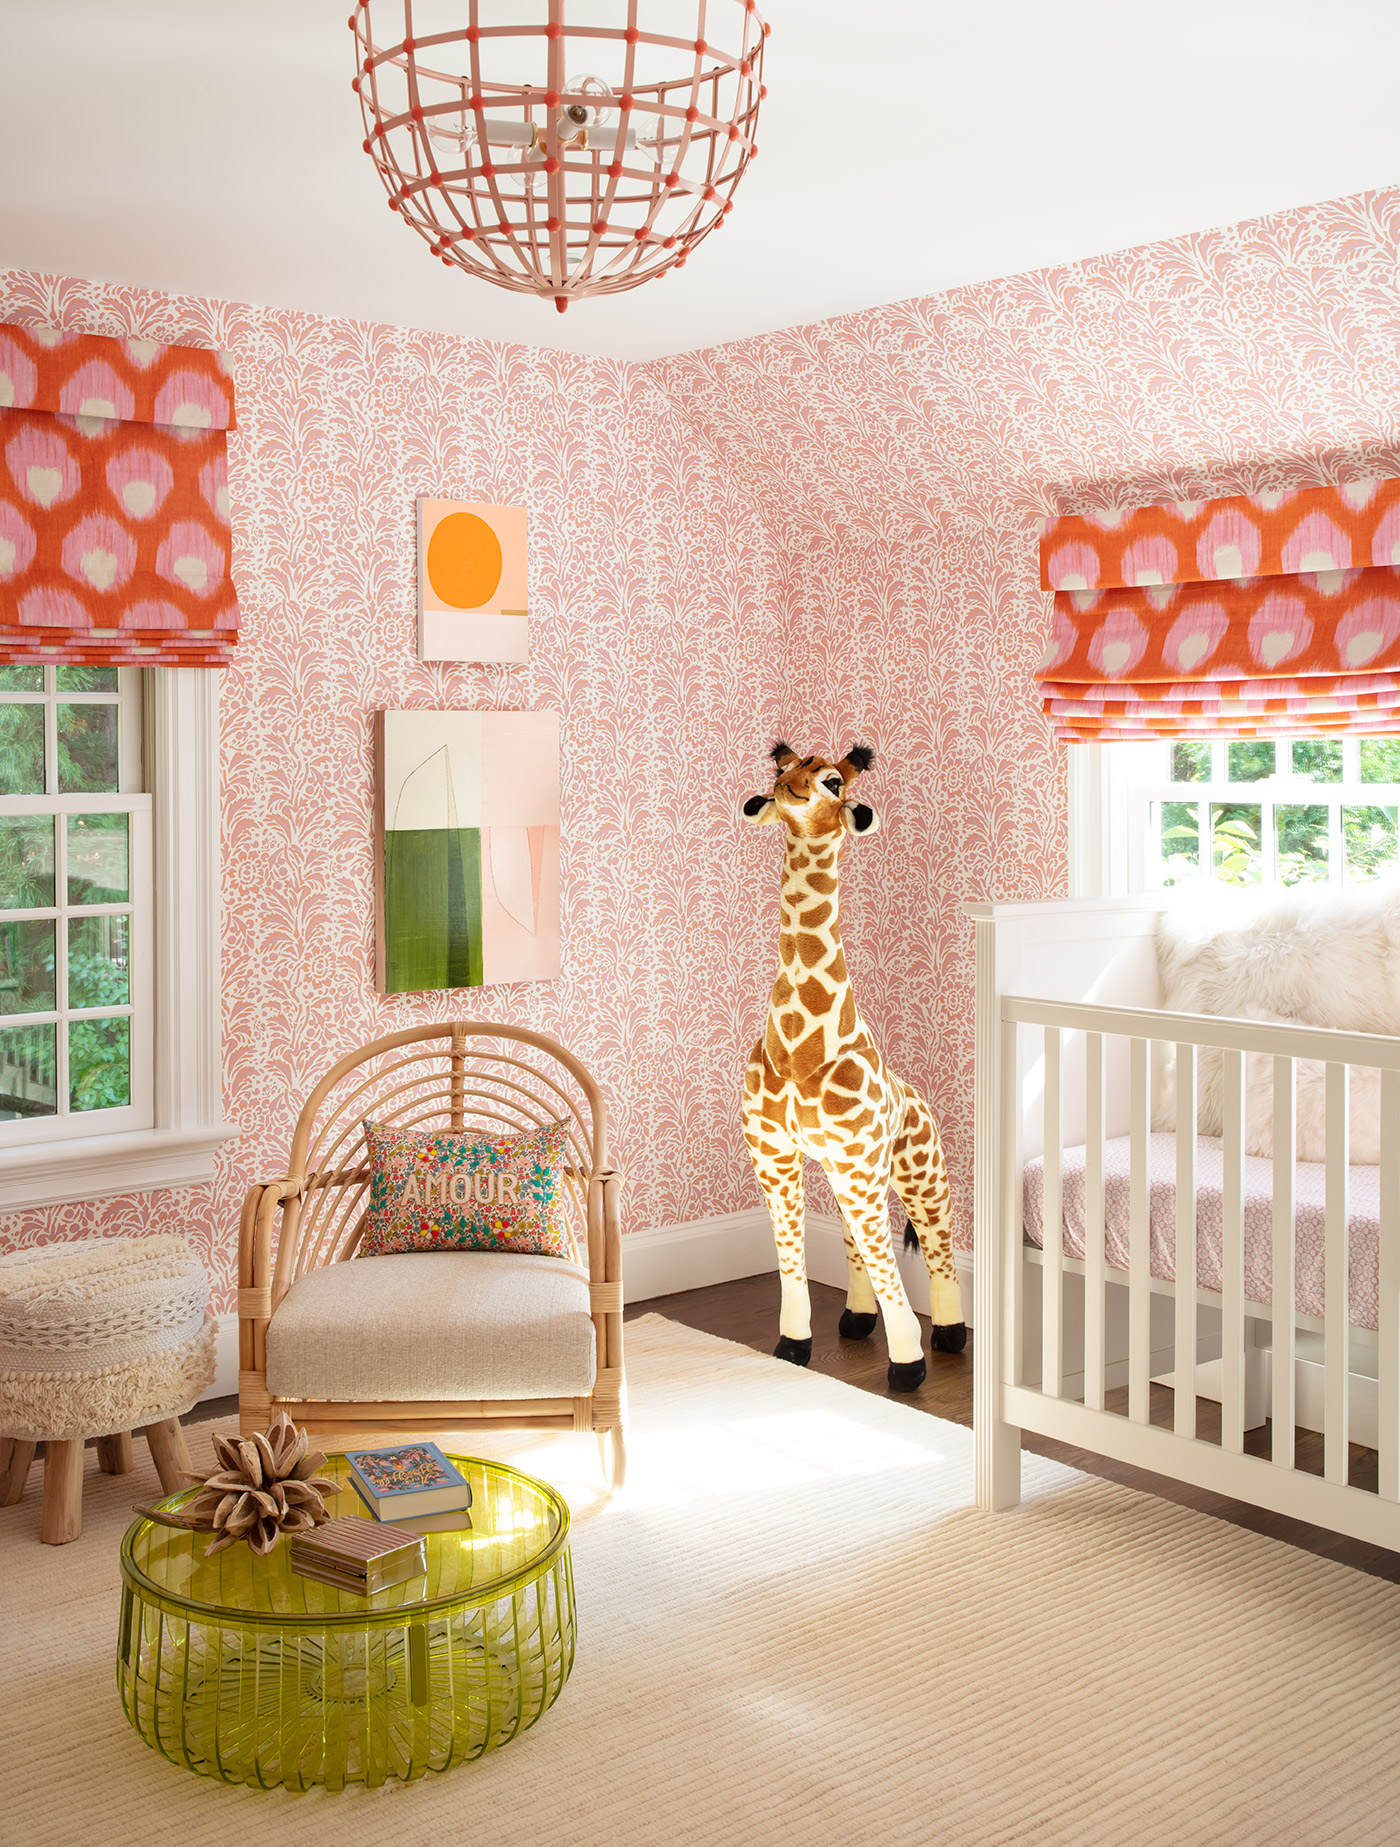 The designer wallpaper seven rooms in this Wellesley house, including this nursery for the clients' second daughter.